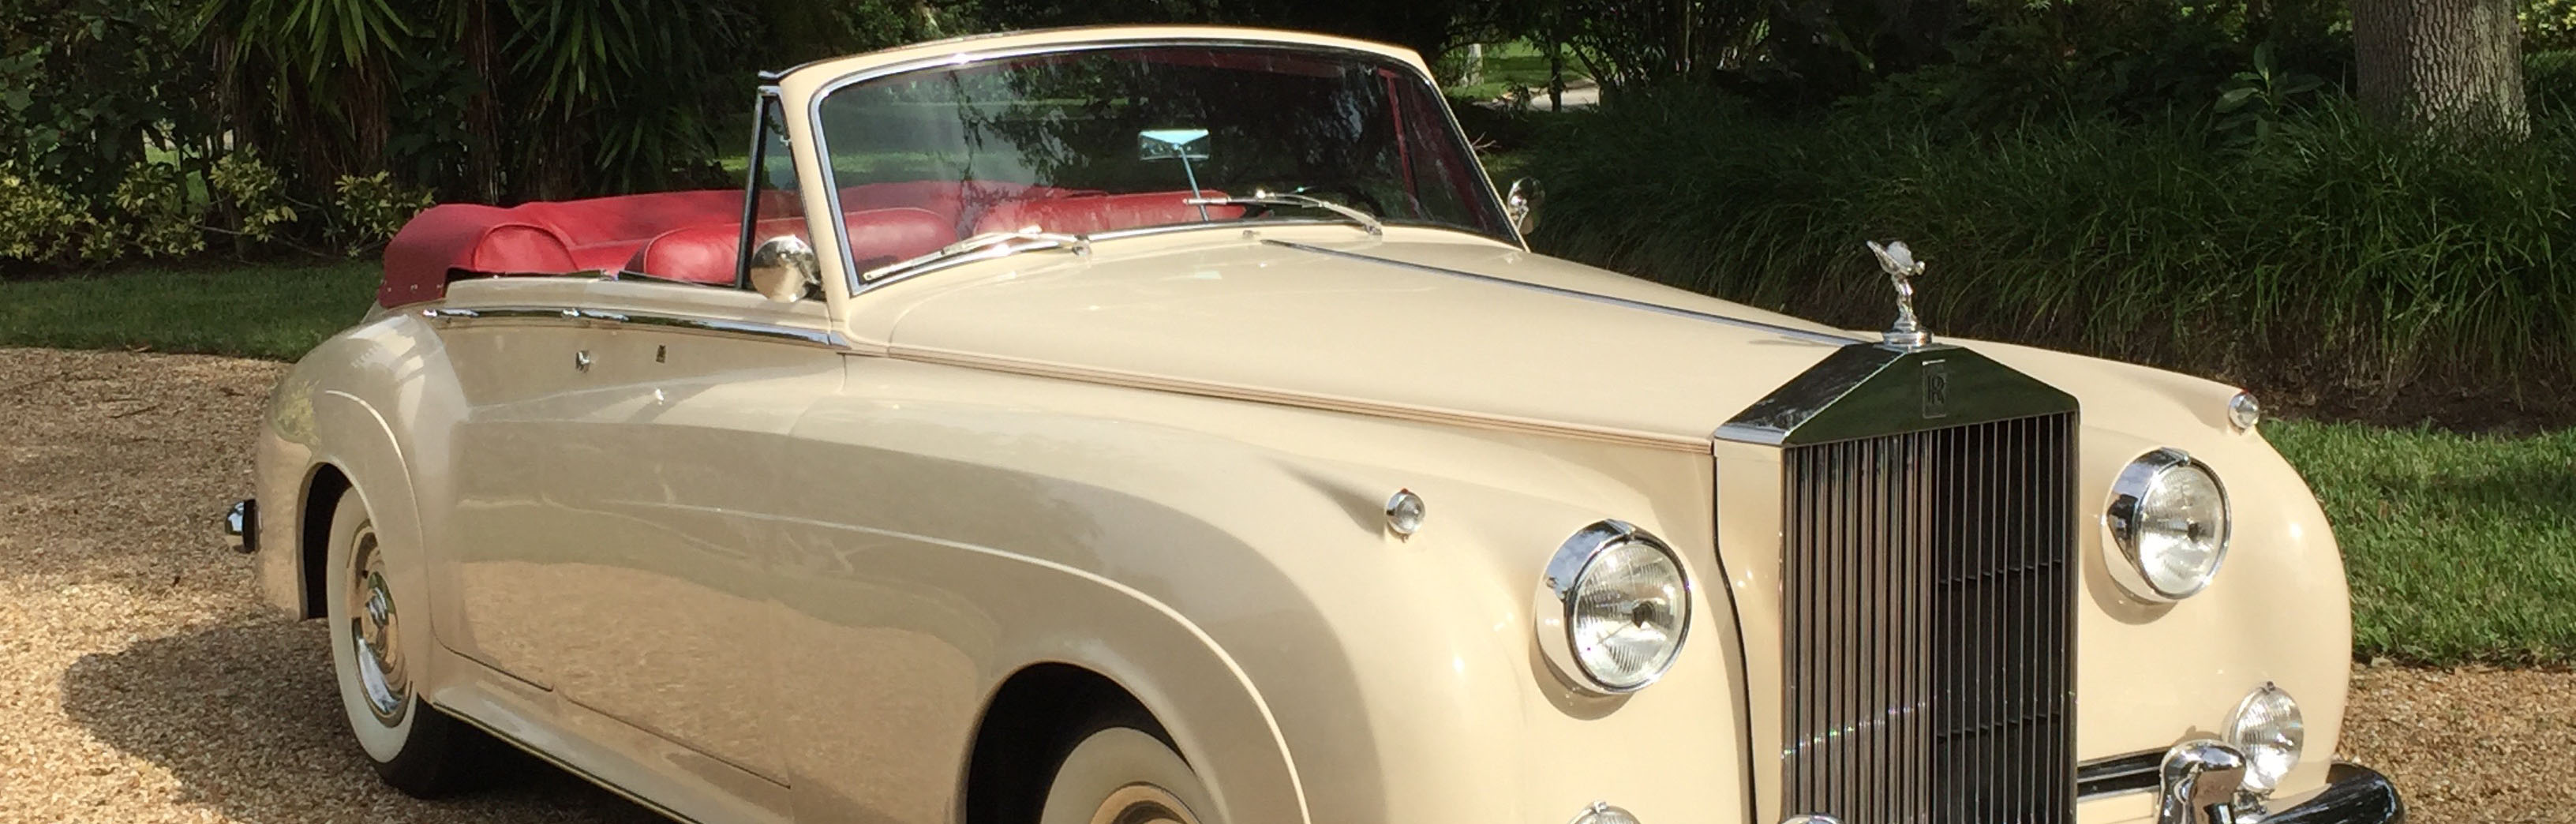 carousel_crop?t=1503948052 a supplier of rolls royce & bentley new and used parts since 1979  at fashall.co